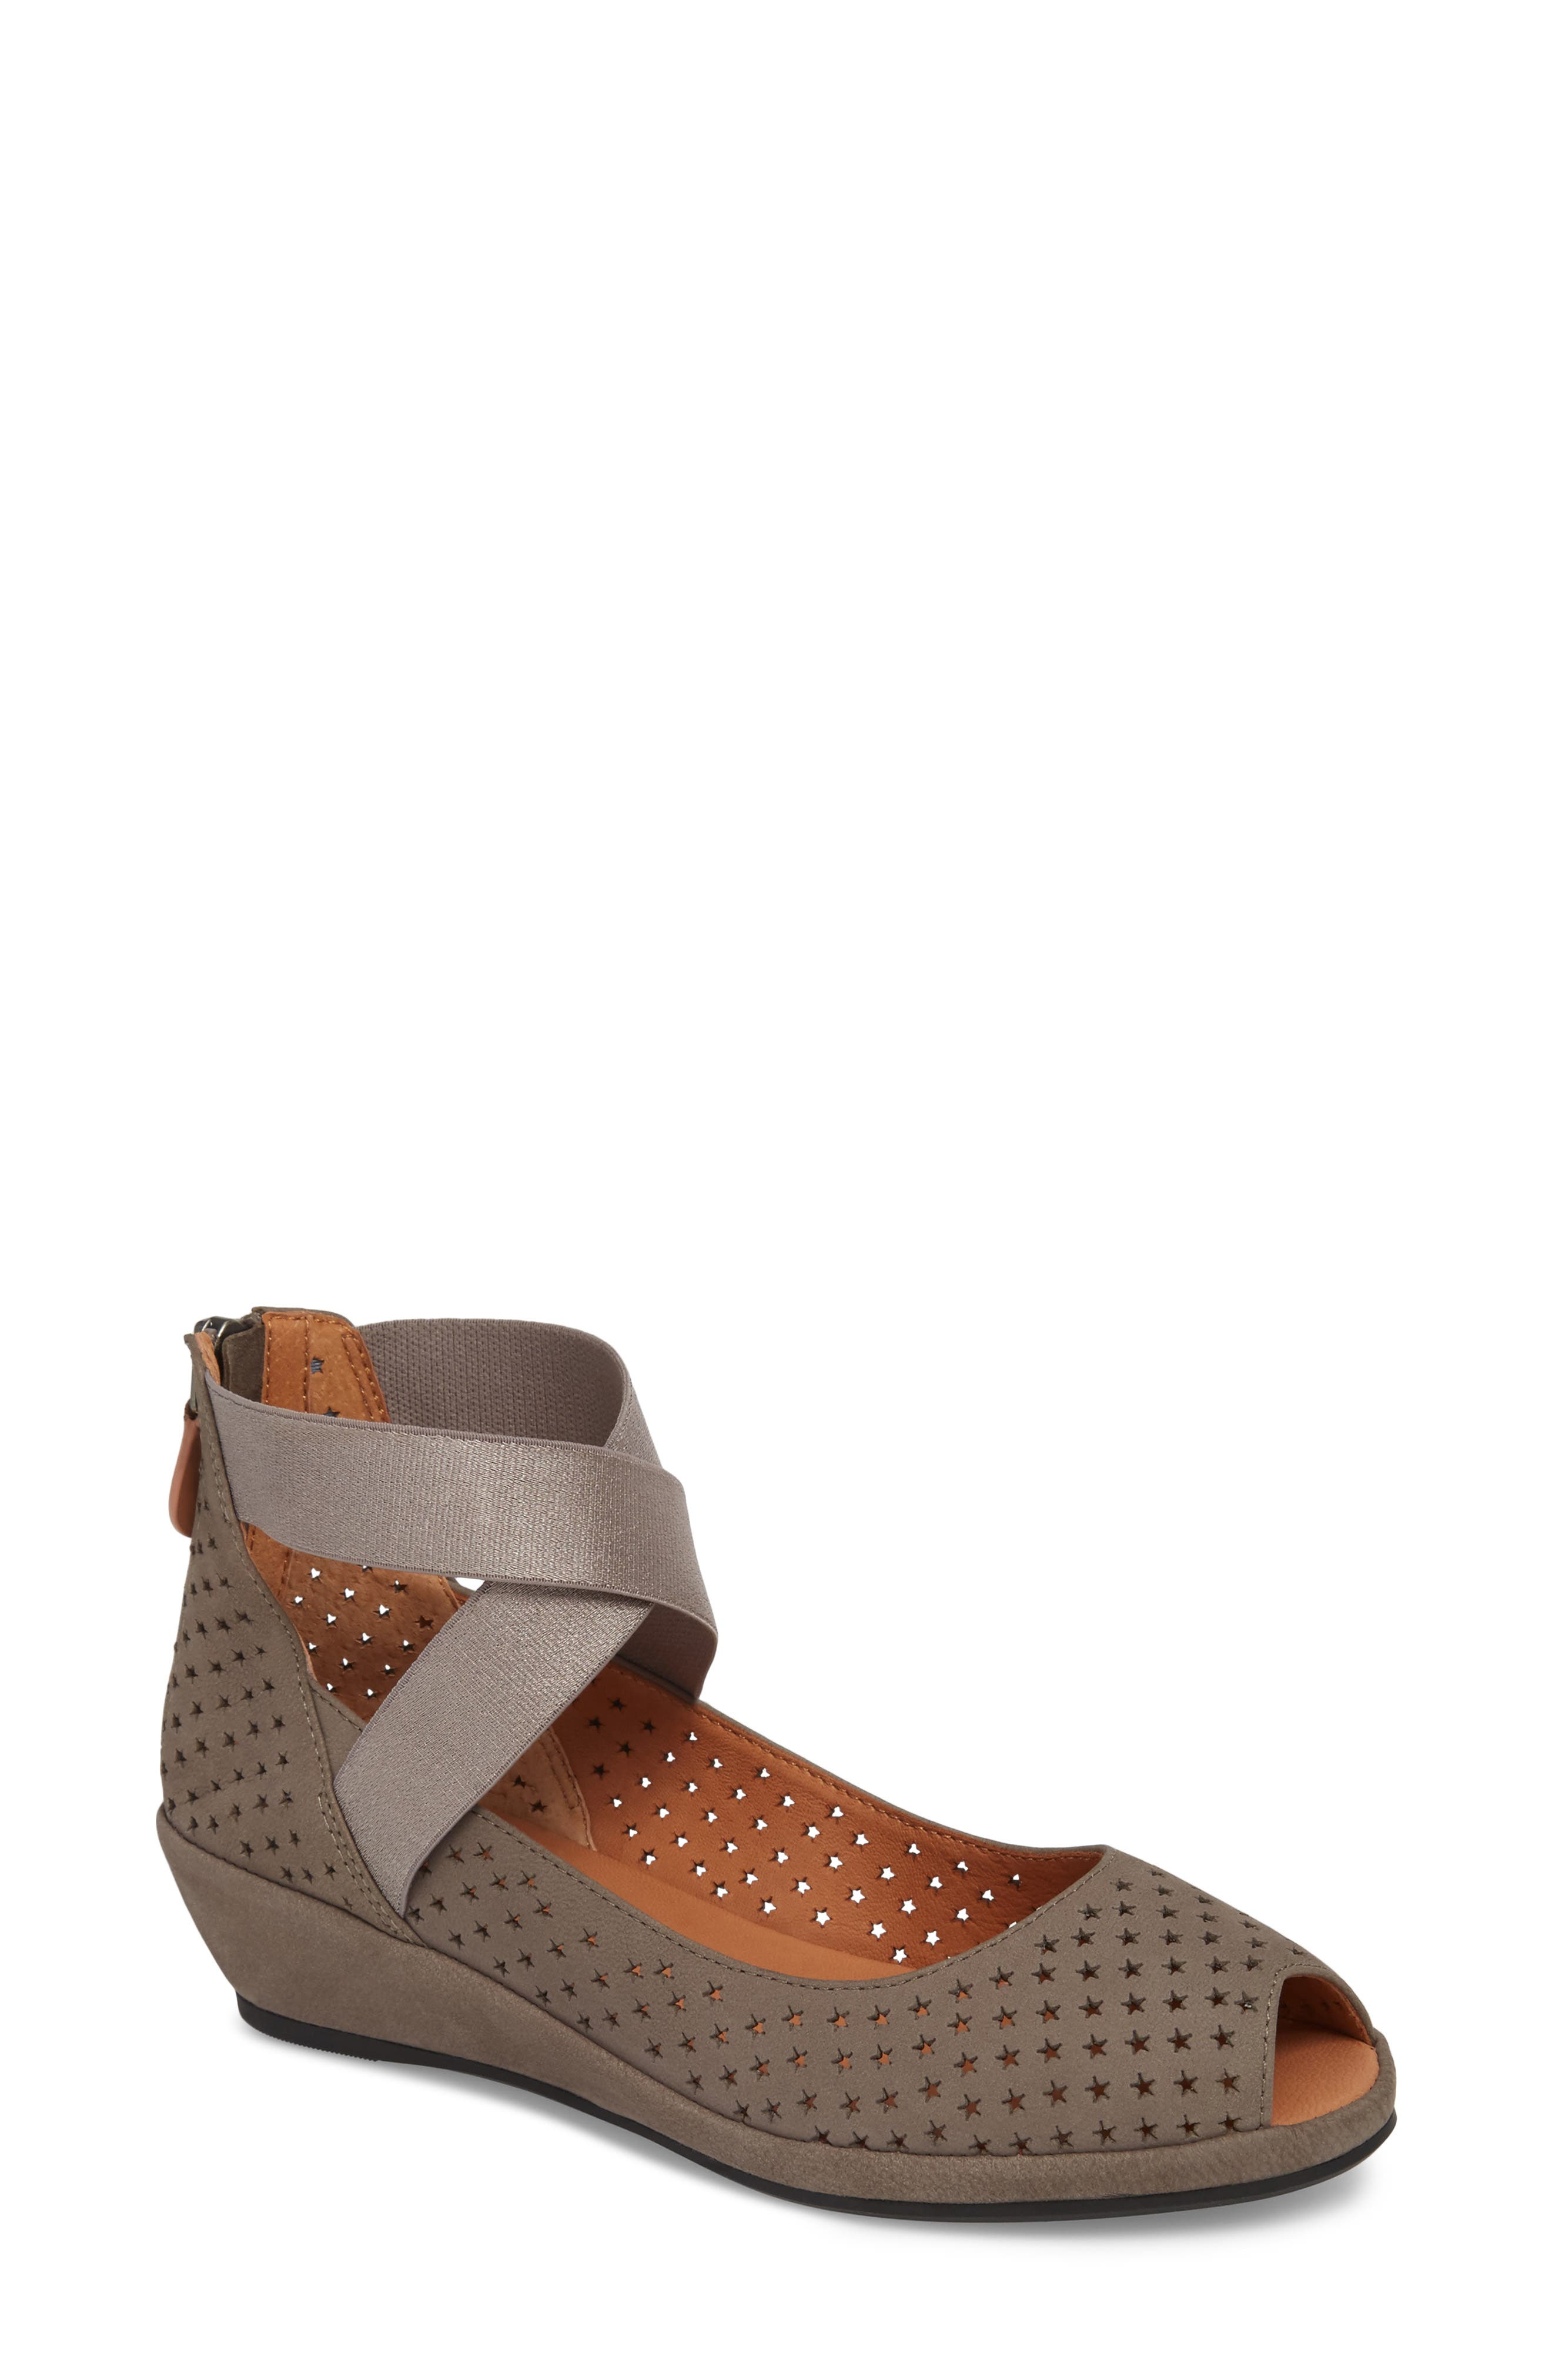 GENTLE SOULS BY KENNETH COLE,                             Lisa Wedge Sandal,                             Main thumbnail 1, color,                             090